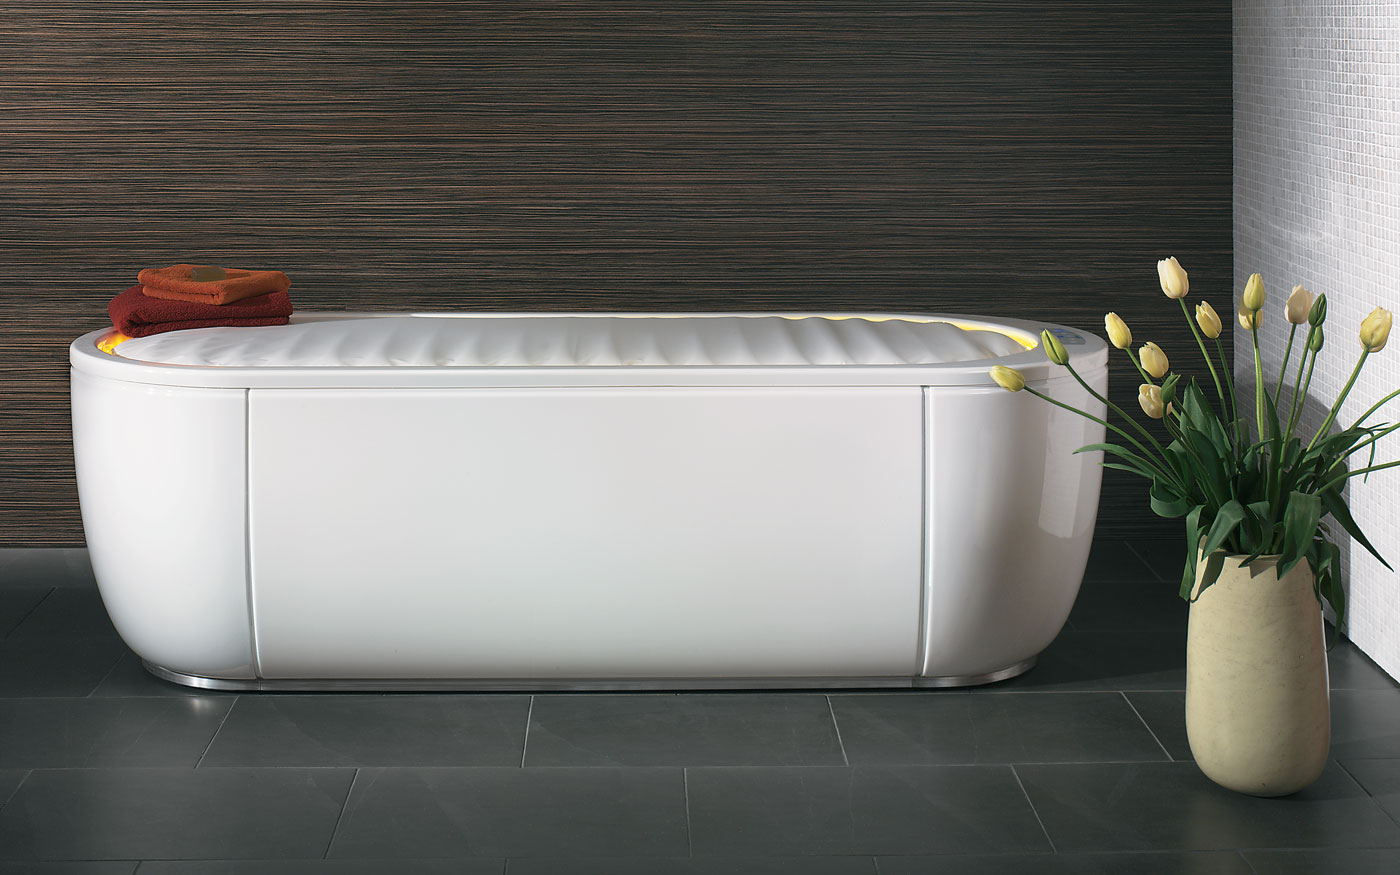 Dry Float Jouvence Dry Floats Spa Equipment